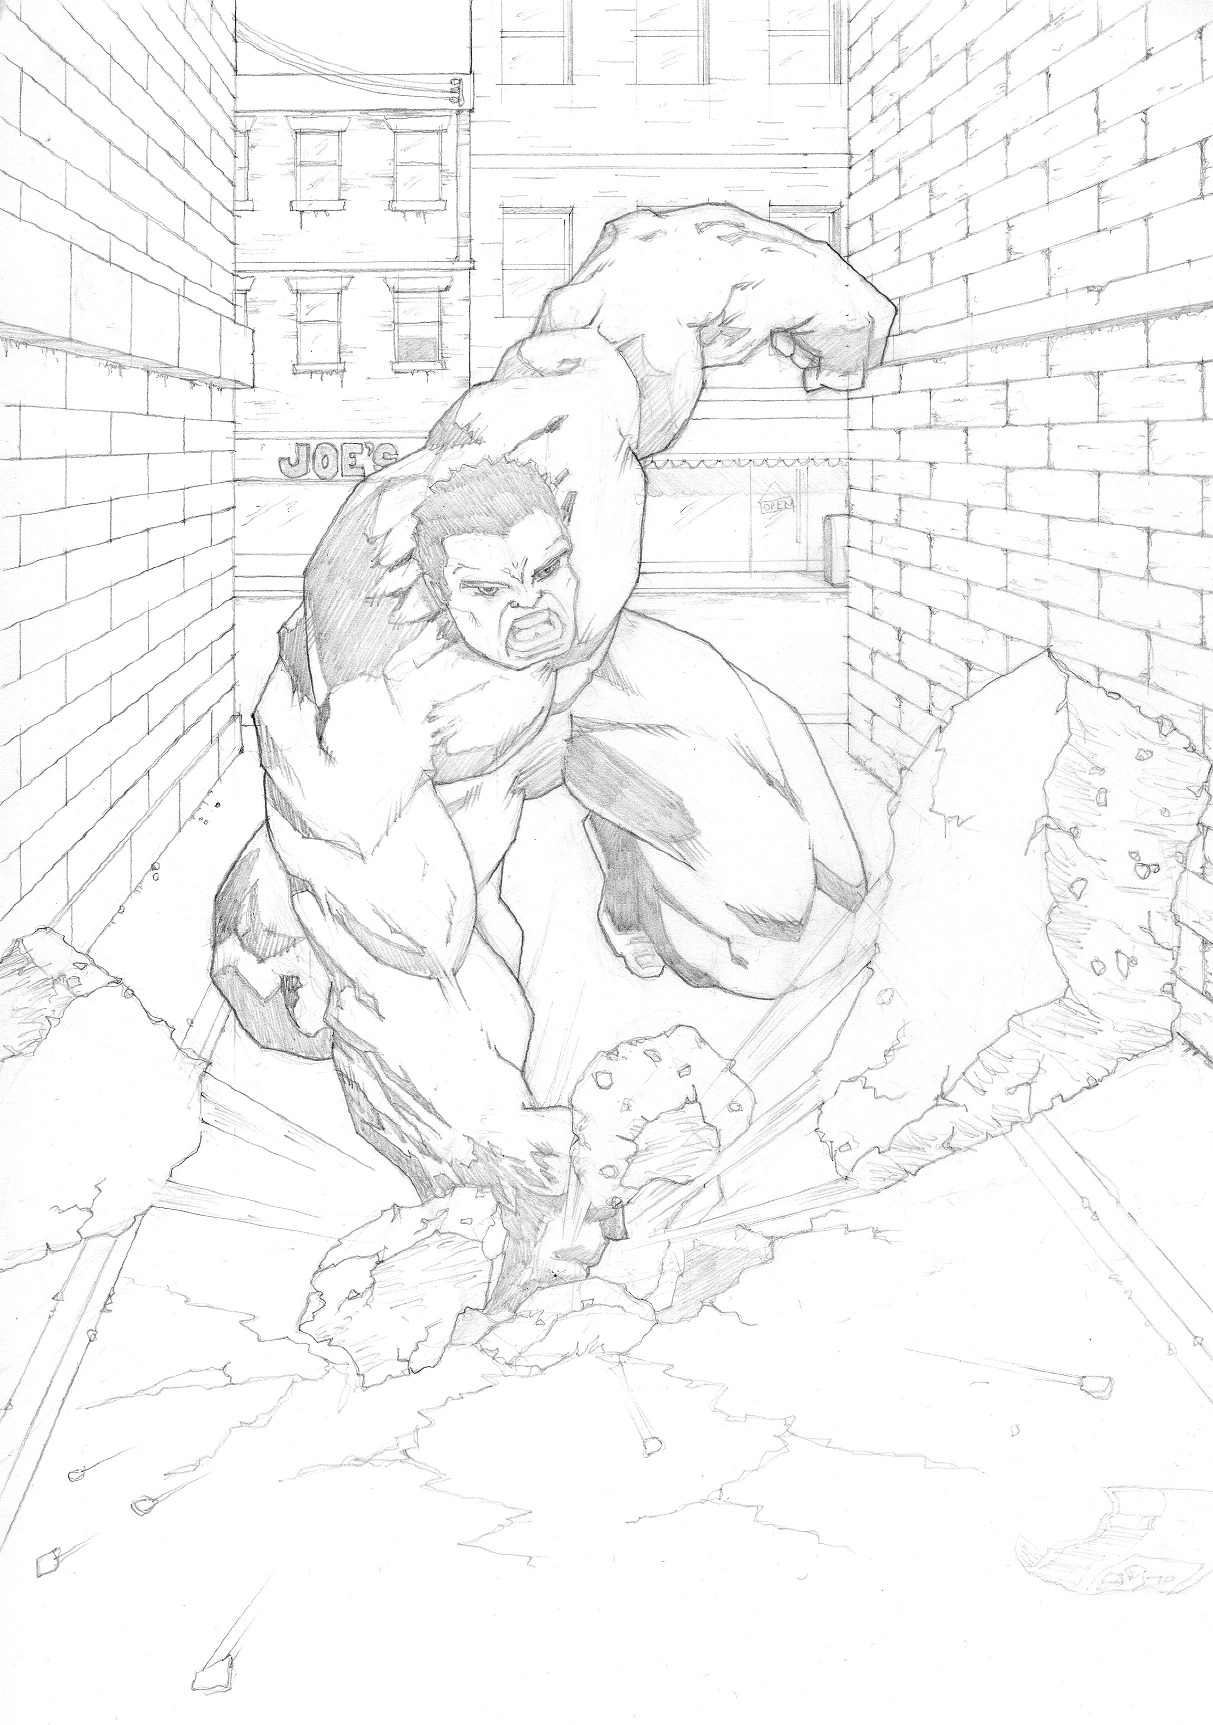 Pencil sketch of The Hulk